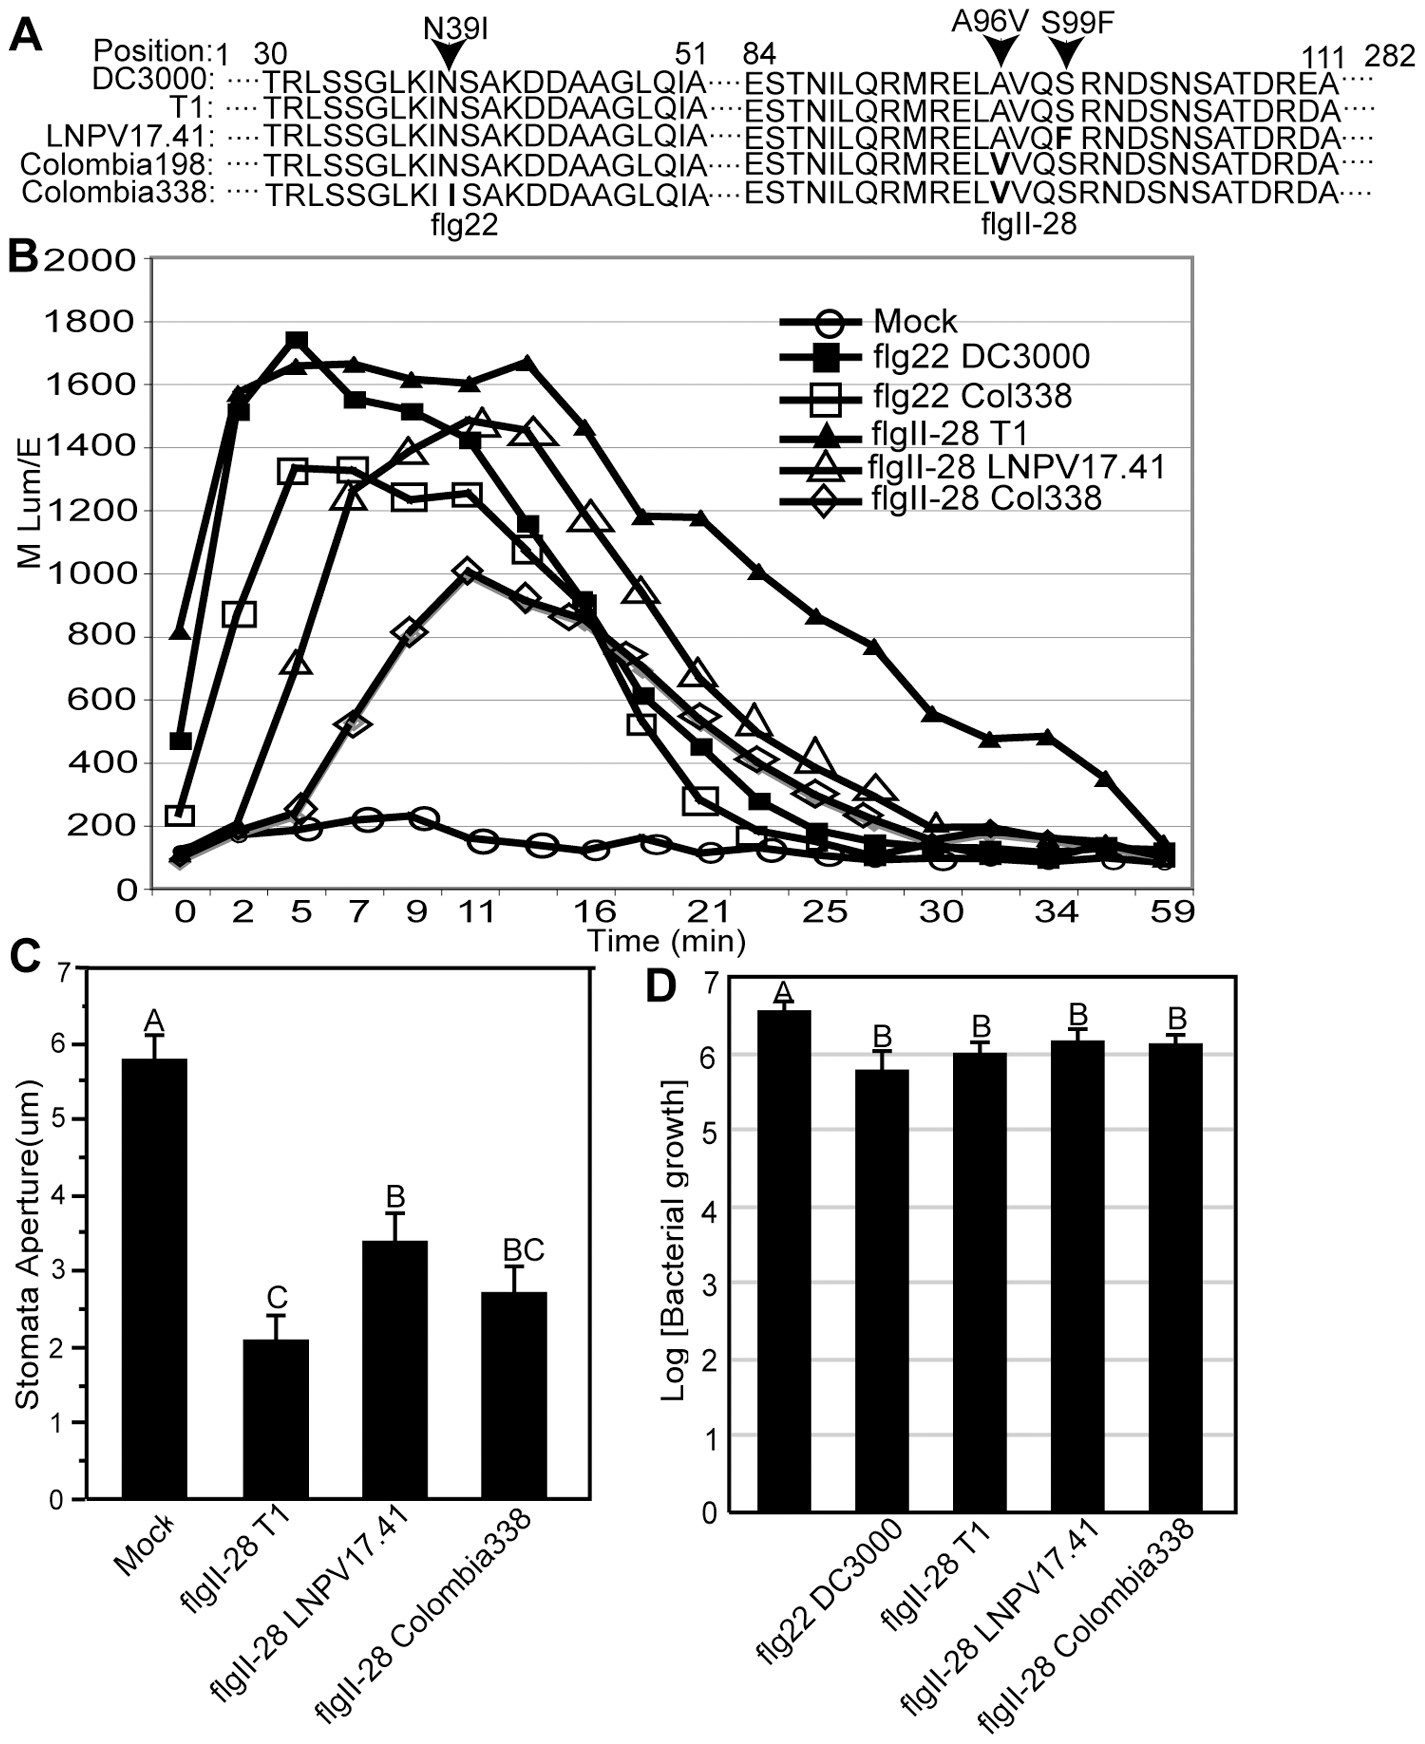 The flagellin epitope flgII-28 triggers reactive oxygen species (ROS) in tomato leaves whereby derived alleles - typical of today's <i>Pto</i> strains - induce less ROS than the ancestral alleles - typical of strains isolated before 1985.